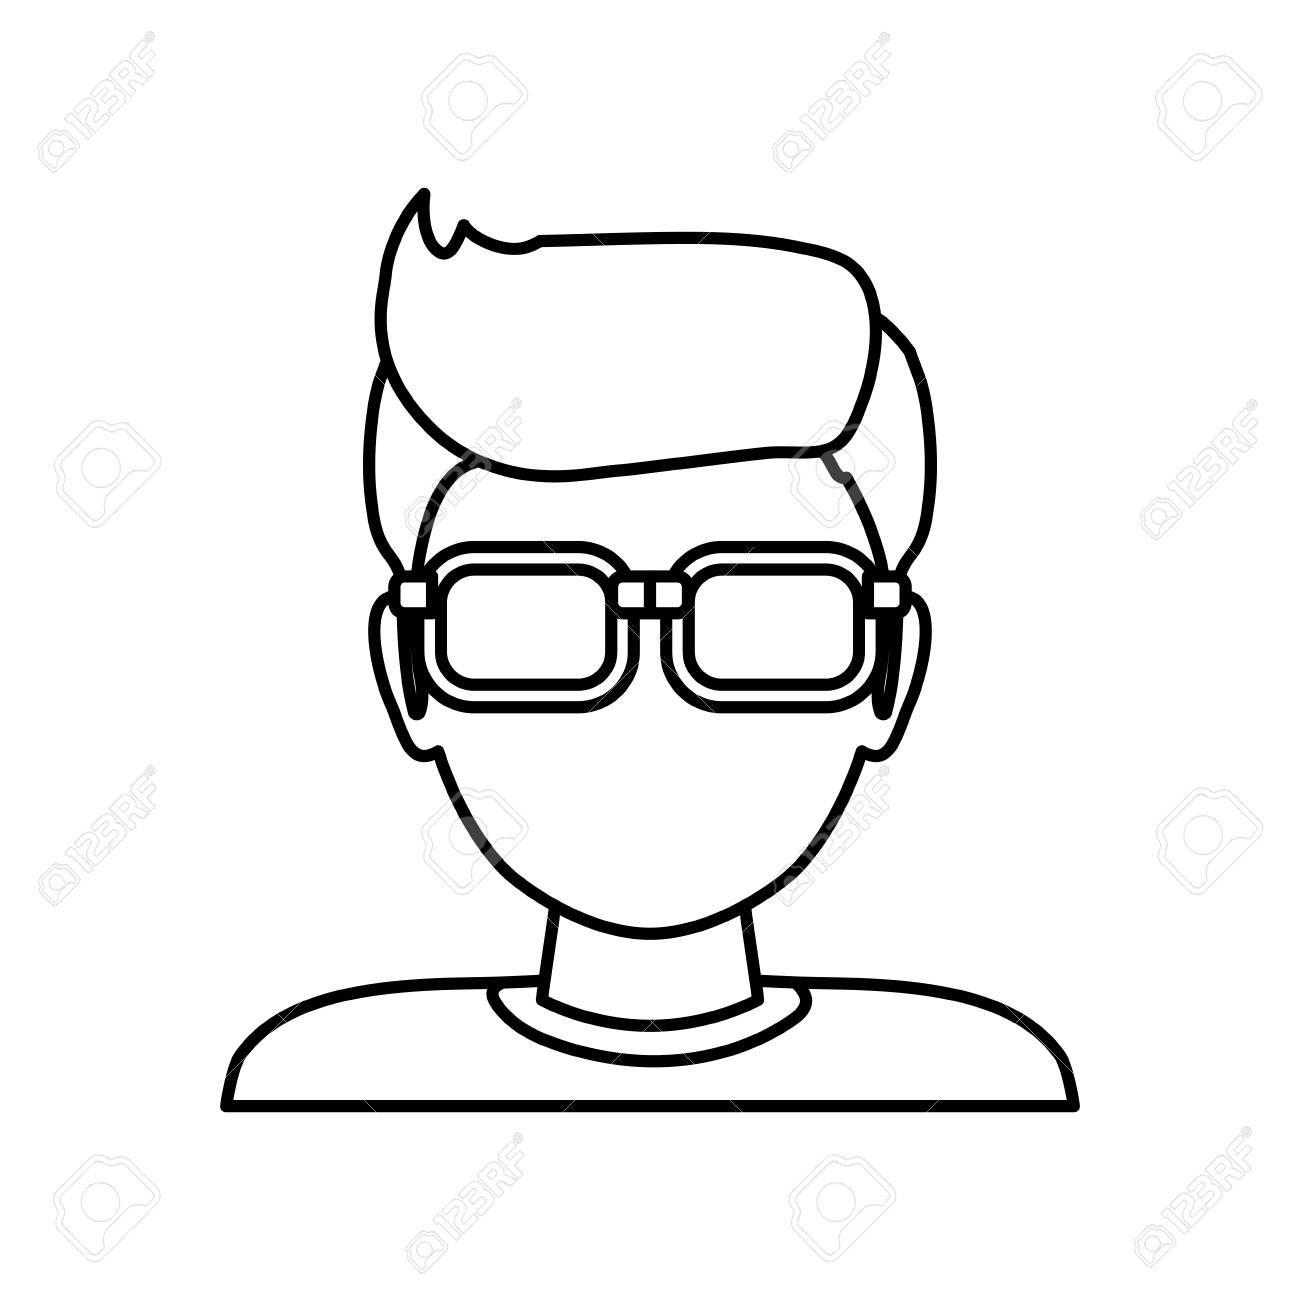 man faceless glasses avatar icon illustration royalty free cliparts